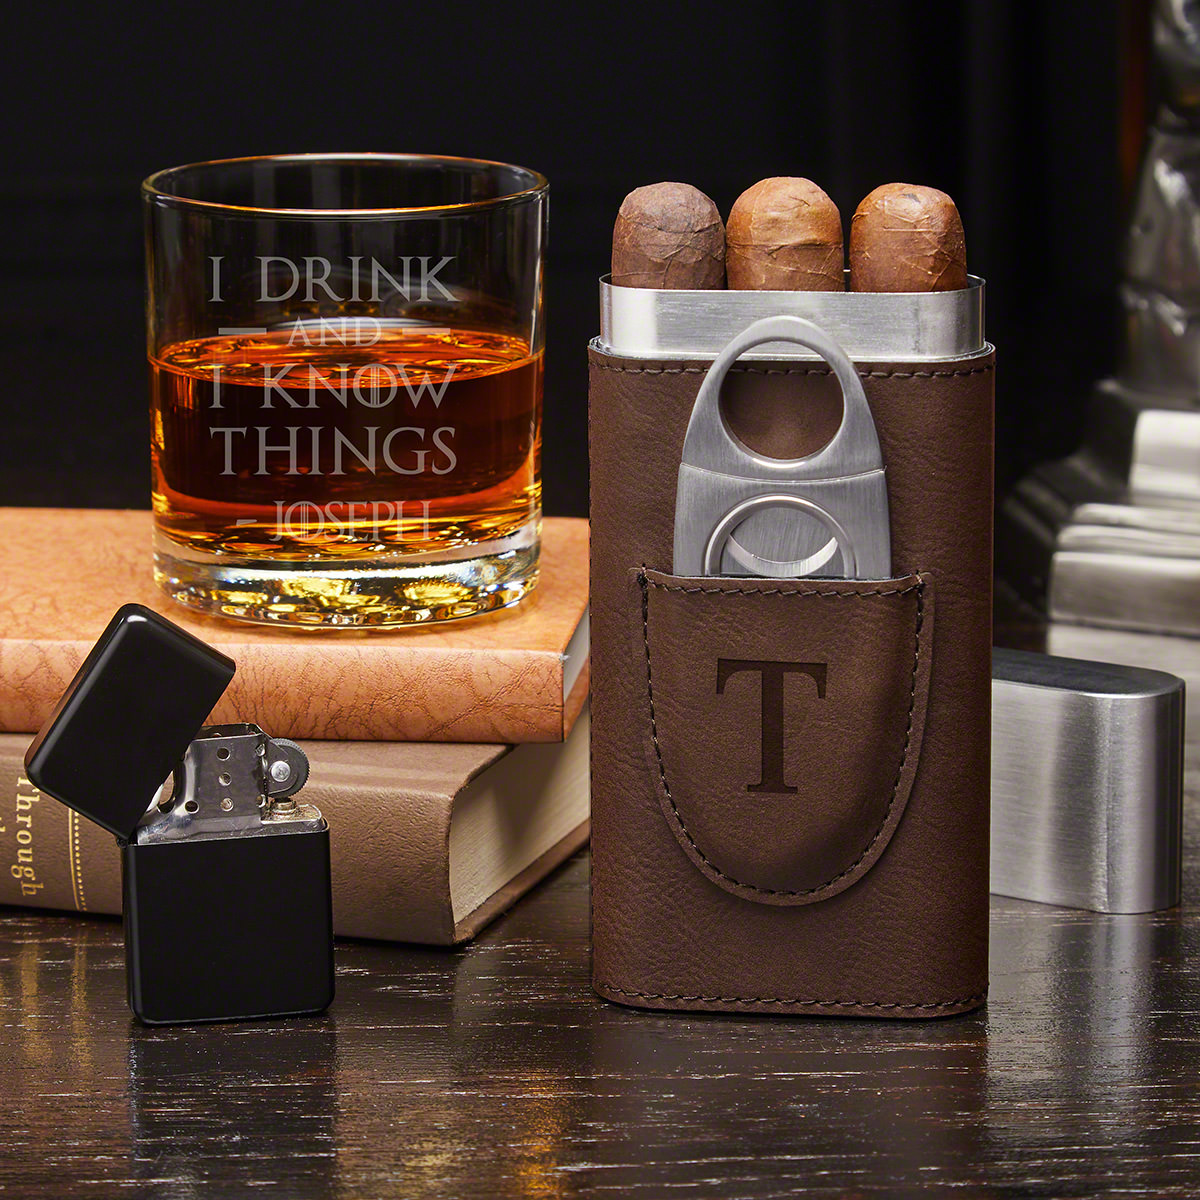 I Drink and I Know Things Personalized Cigar Gift Set with Buckman Glass